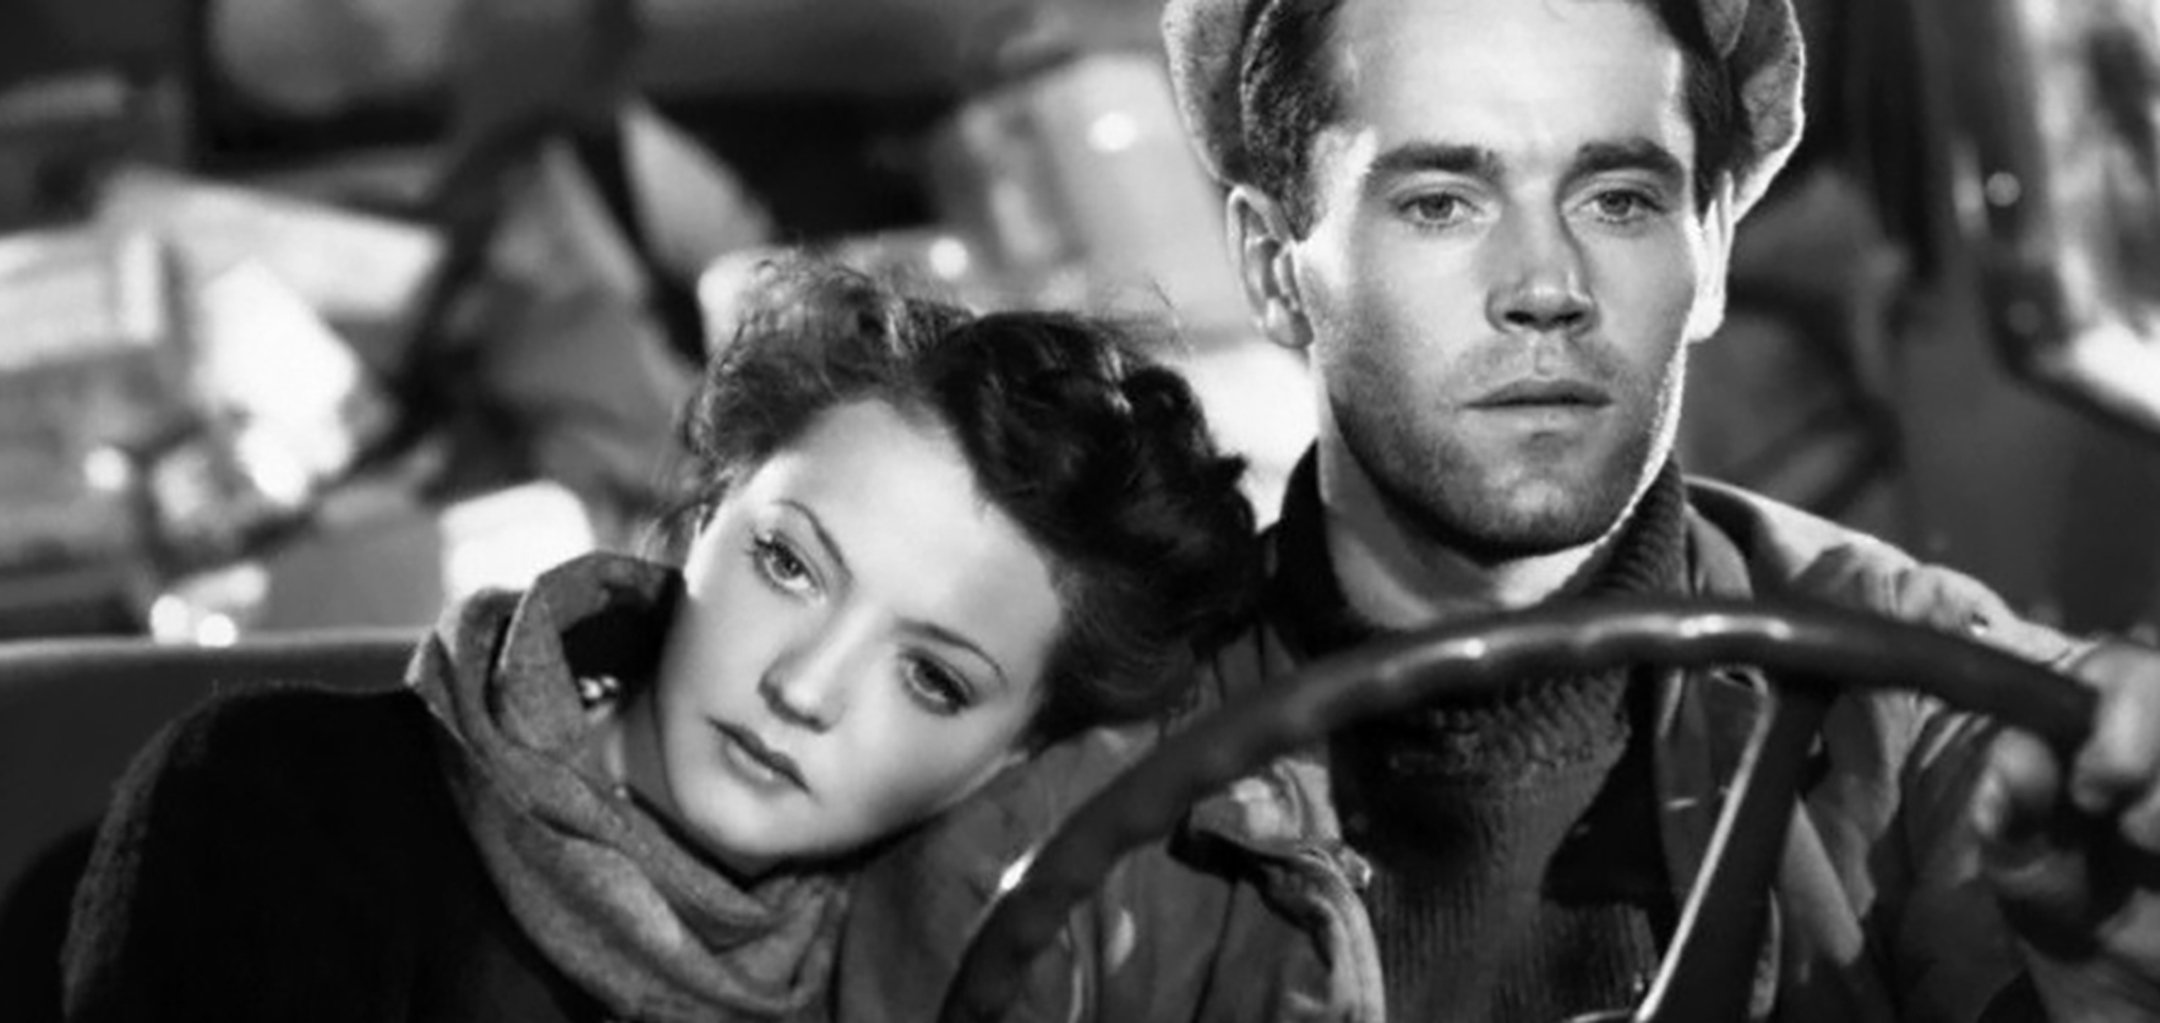 Henry Fonda and Sylvia Sidney in 'You Only Live Once' (1938)